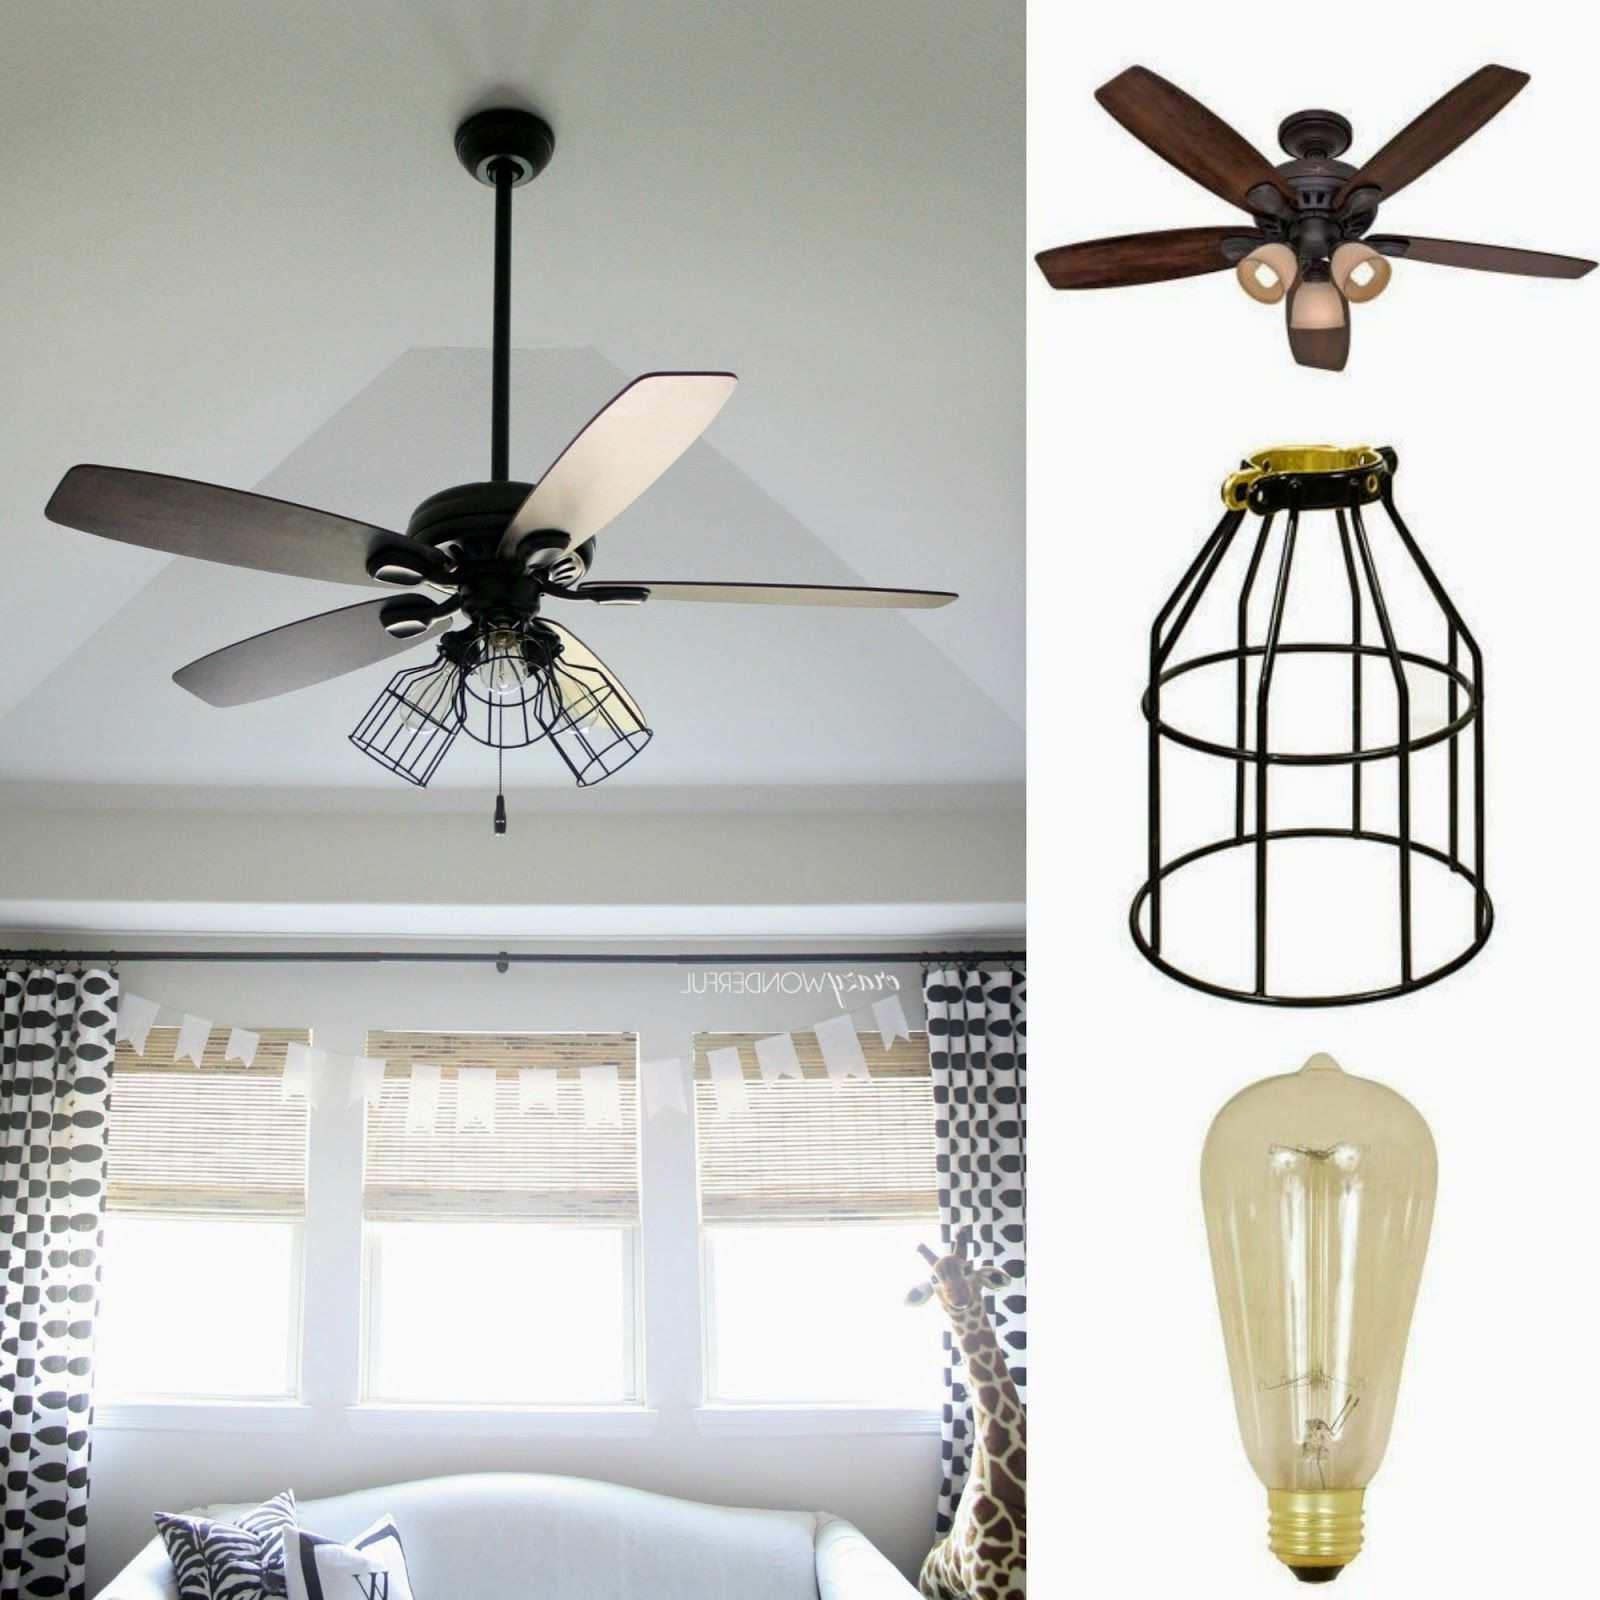 Ceiling Fan With Mason Jar Lights Lovely Dark Aged Bronze Outdoor For Most Popular Outdoor Ceiling Fans With Mason Jar Lights (View 12 of 20)